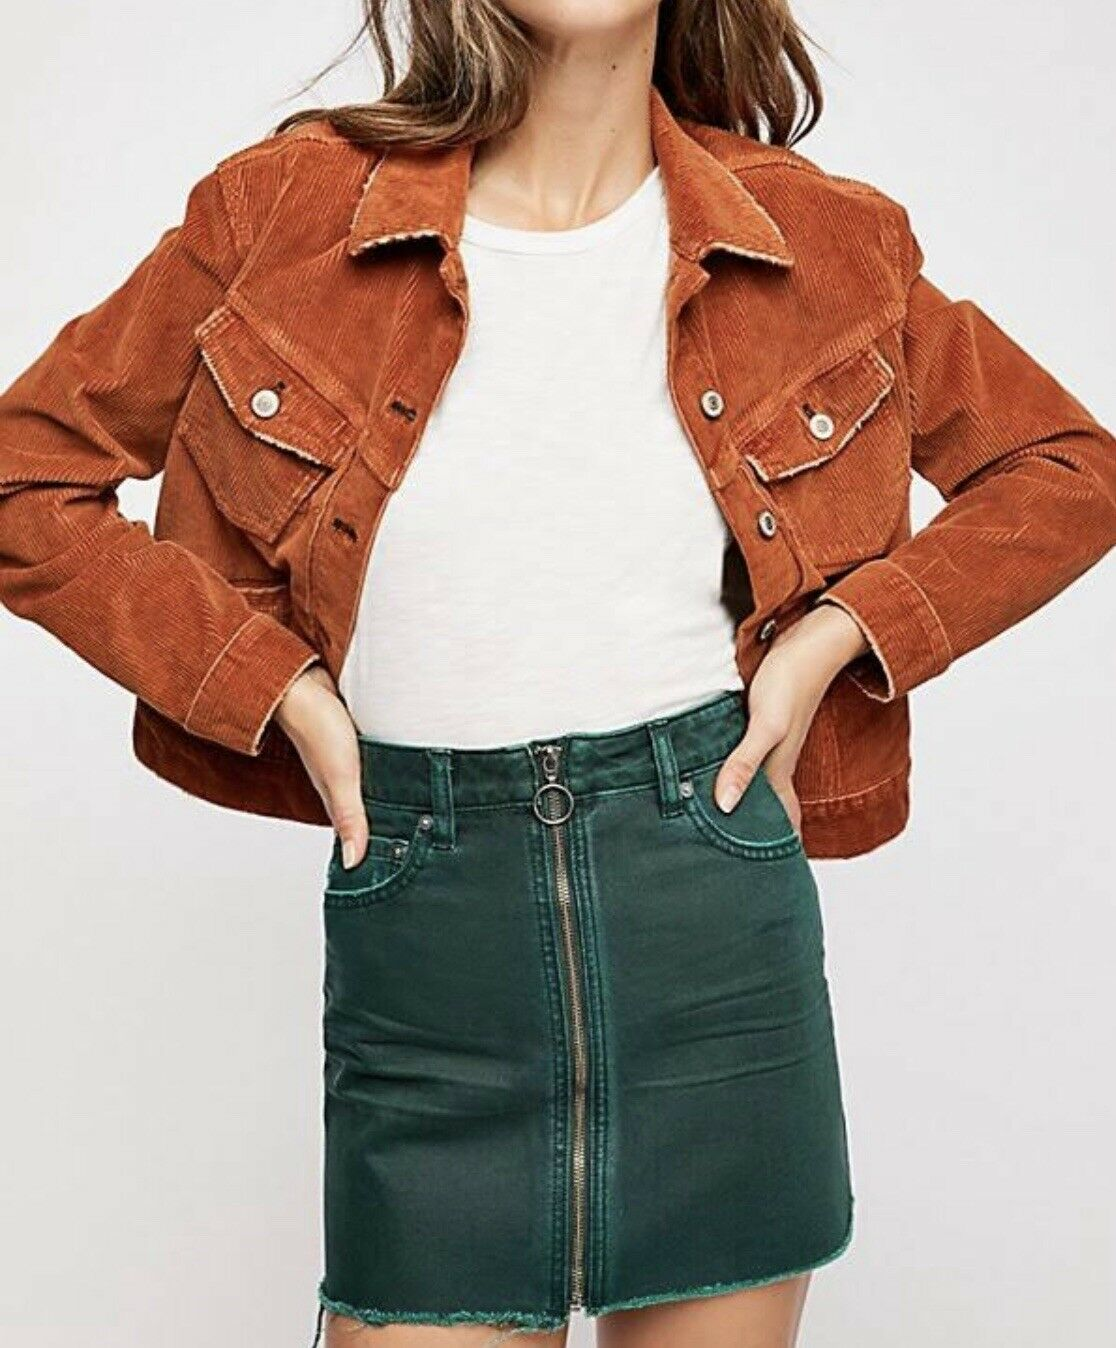 Free People Zip It Up Mini Skirt. color Wilderness. Size 25